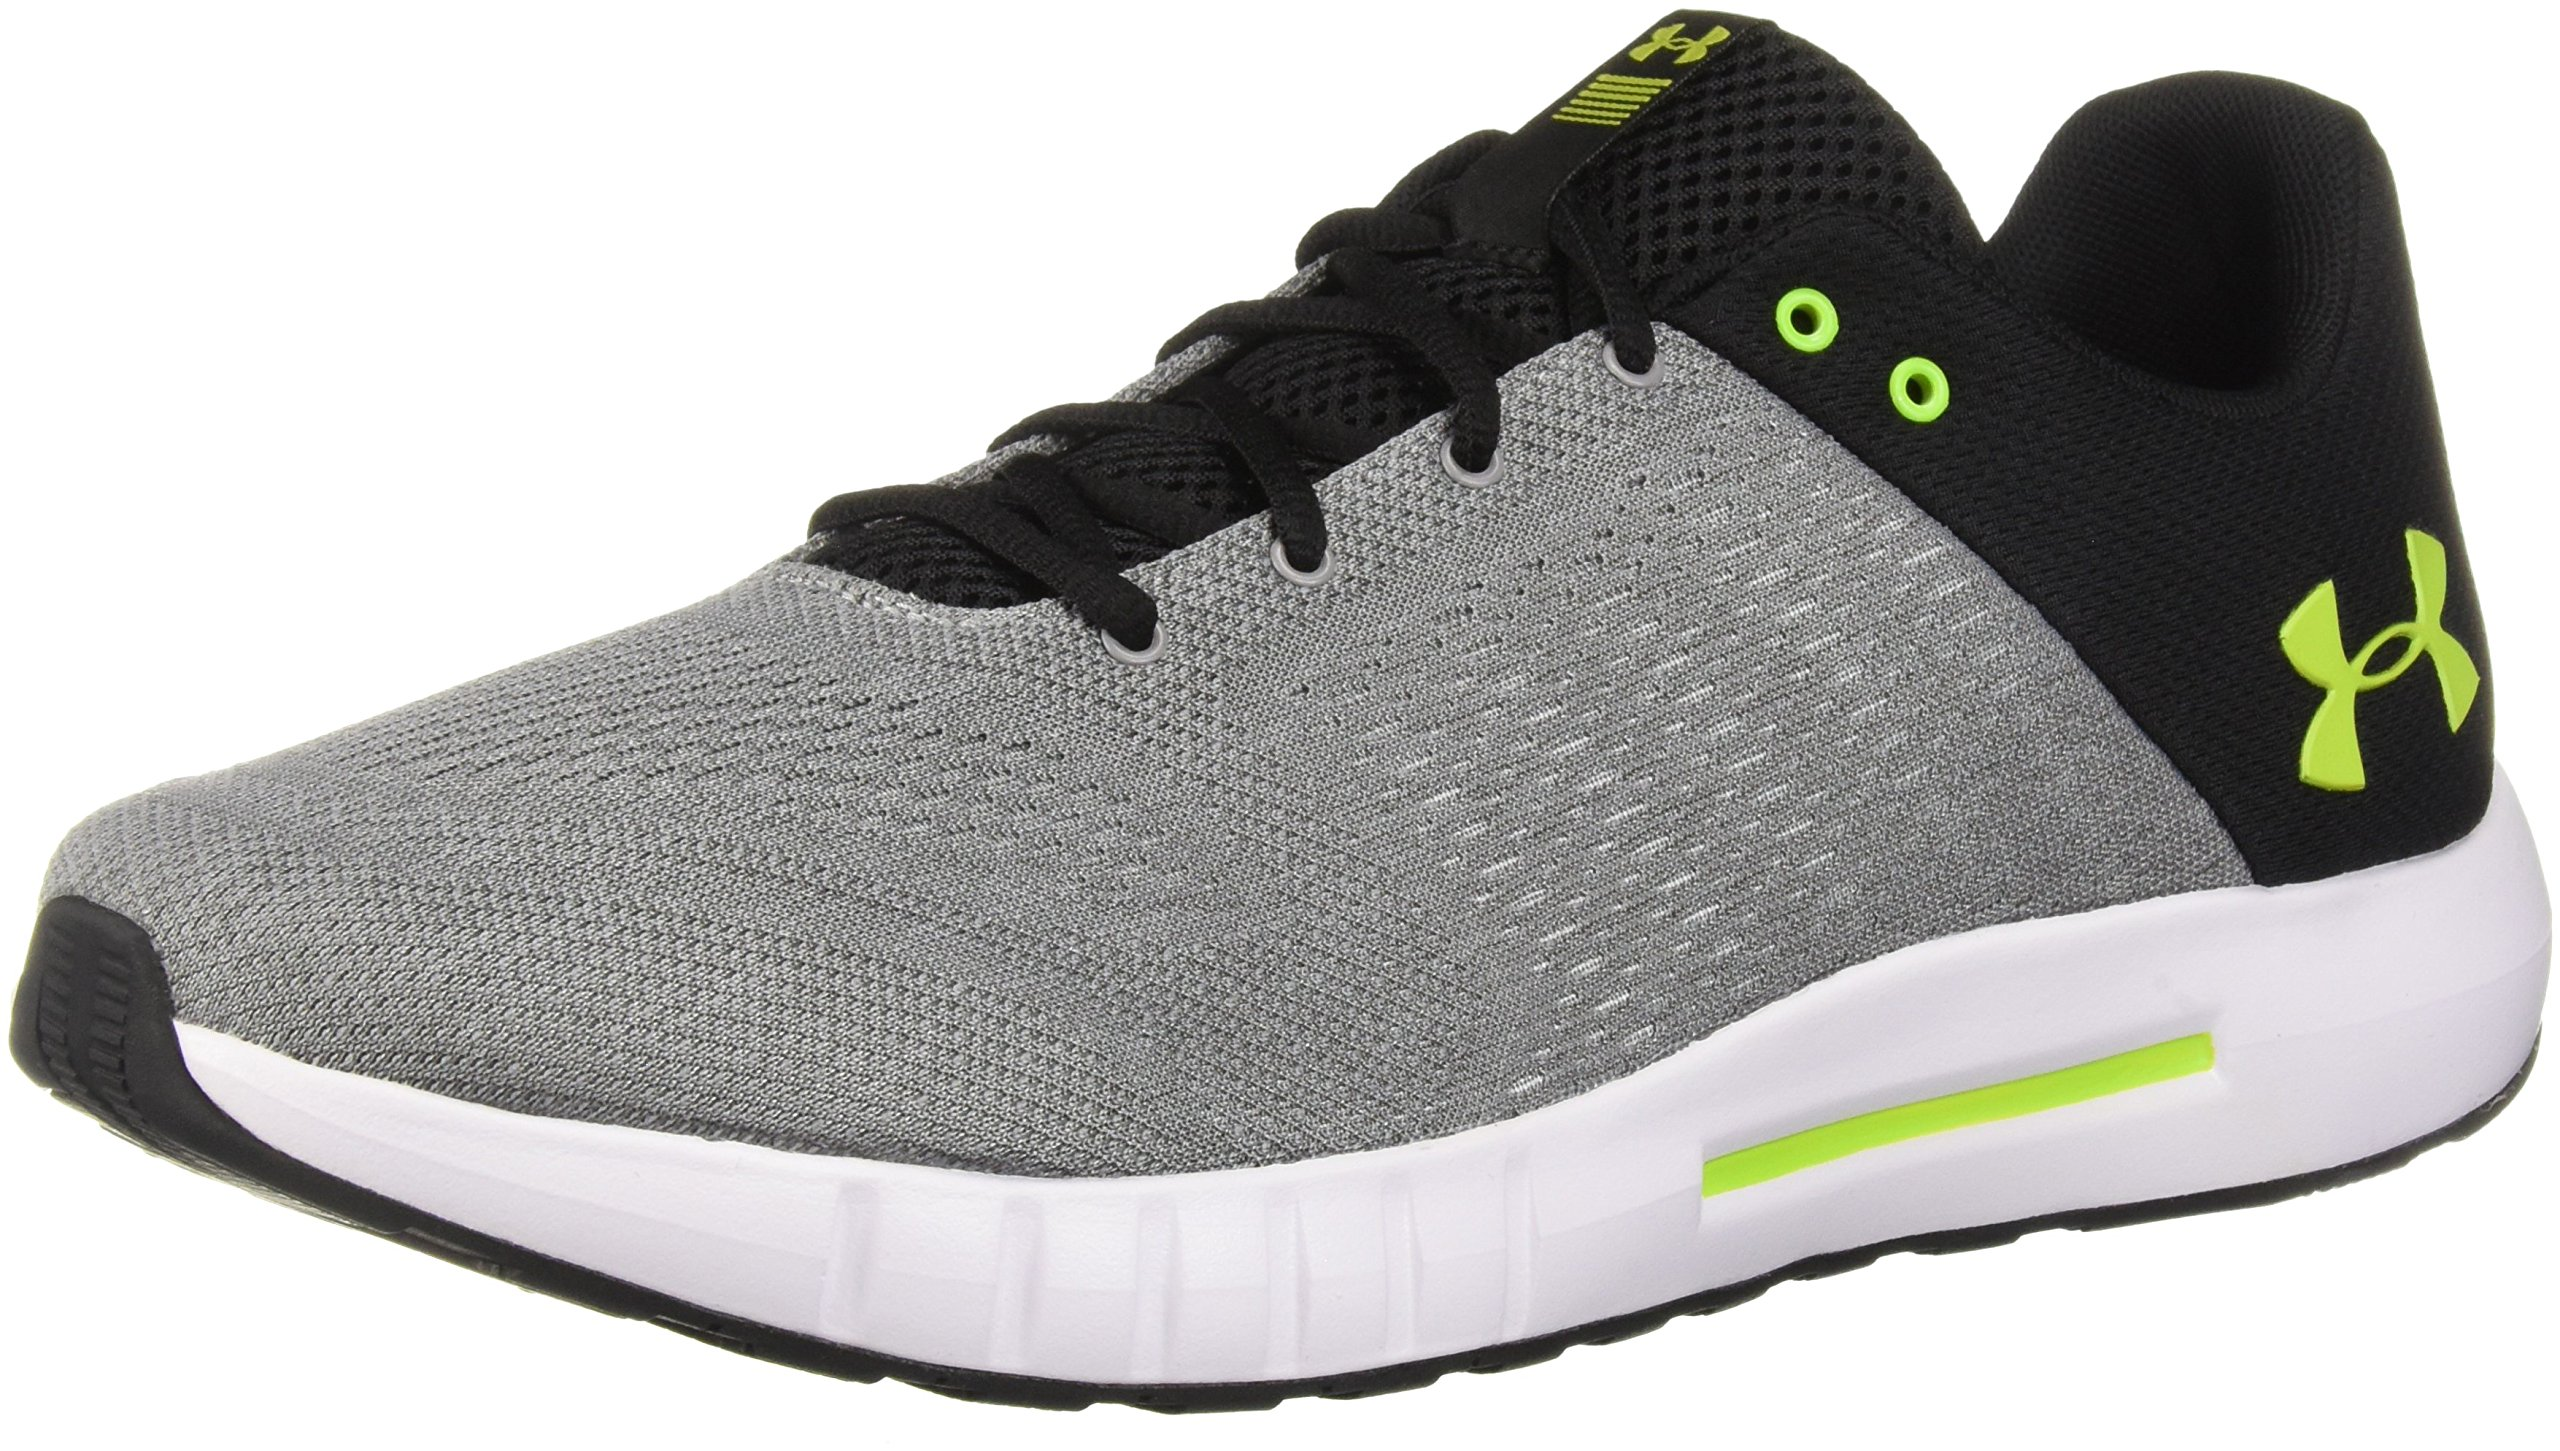 Under Armour Men's Micro G Pursuit-Wide, Steel (101)/Rhino Gray, 7.5 by Under Armour